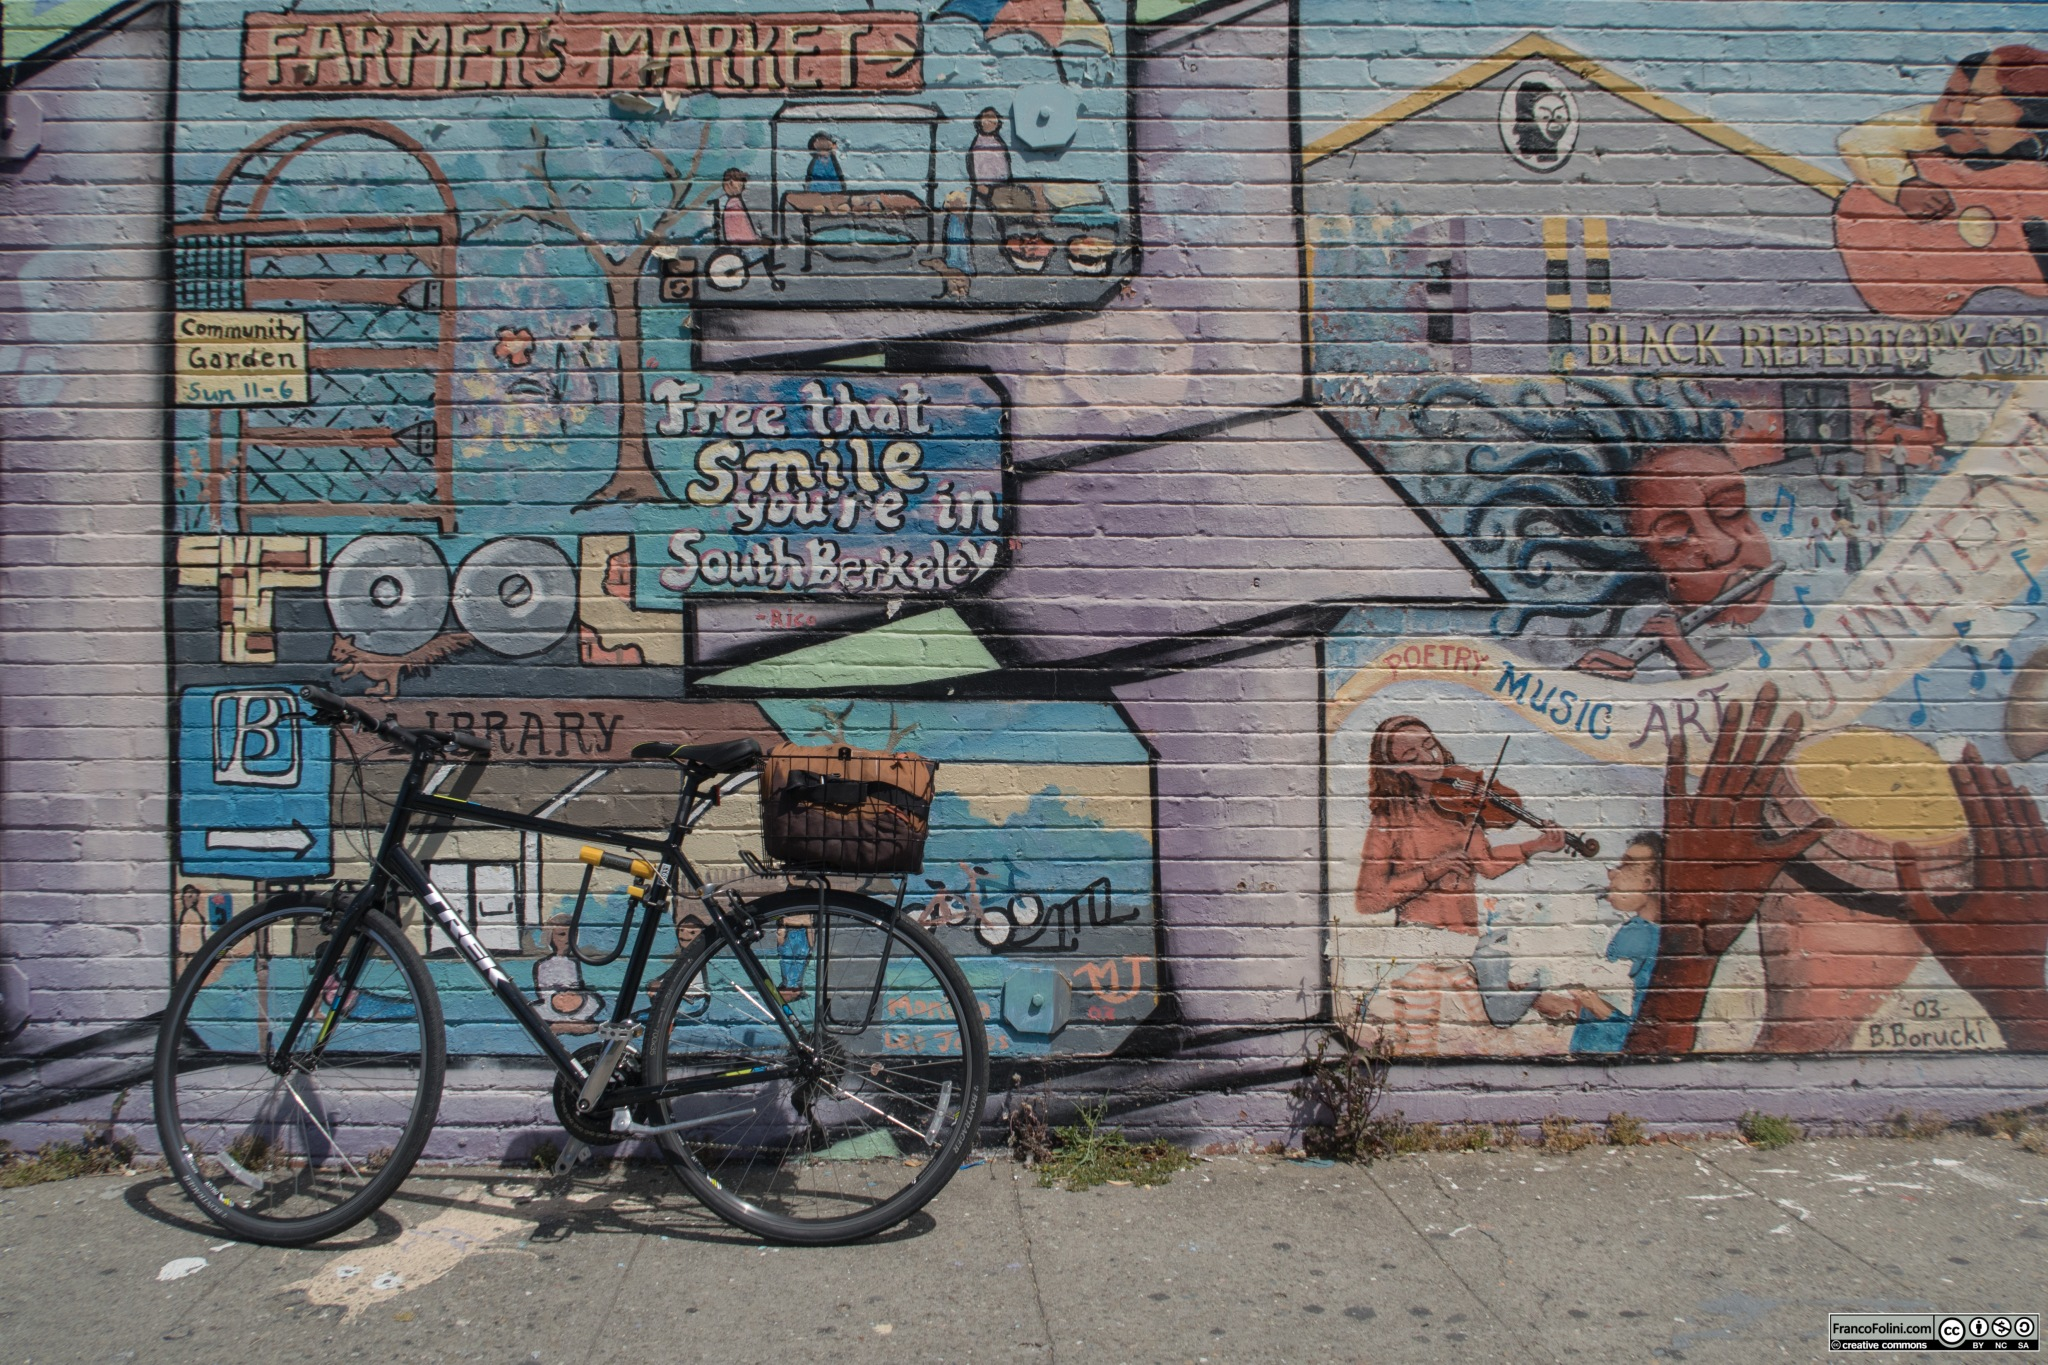 Bike and mural near the Ashby BART station in South Berkeley, CA